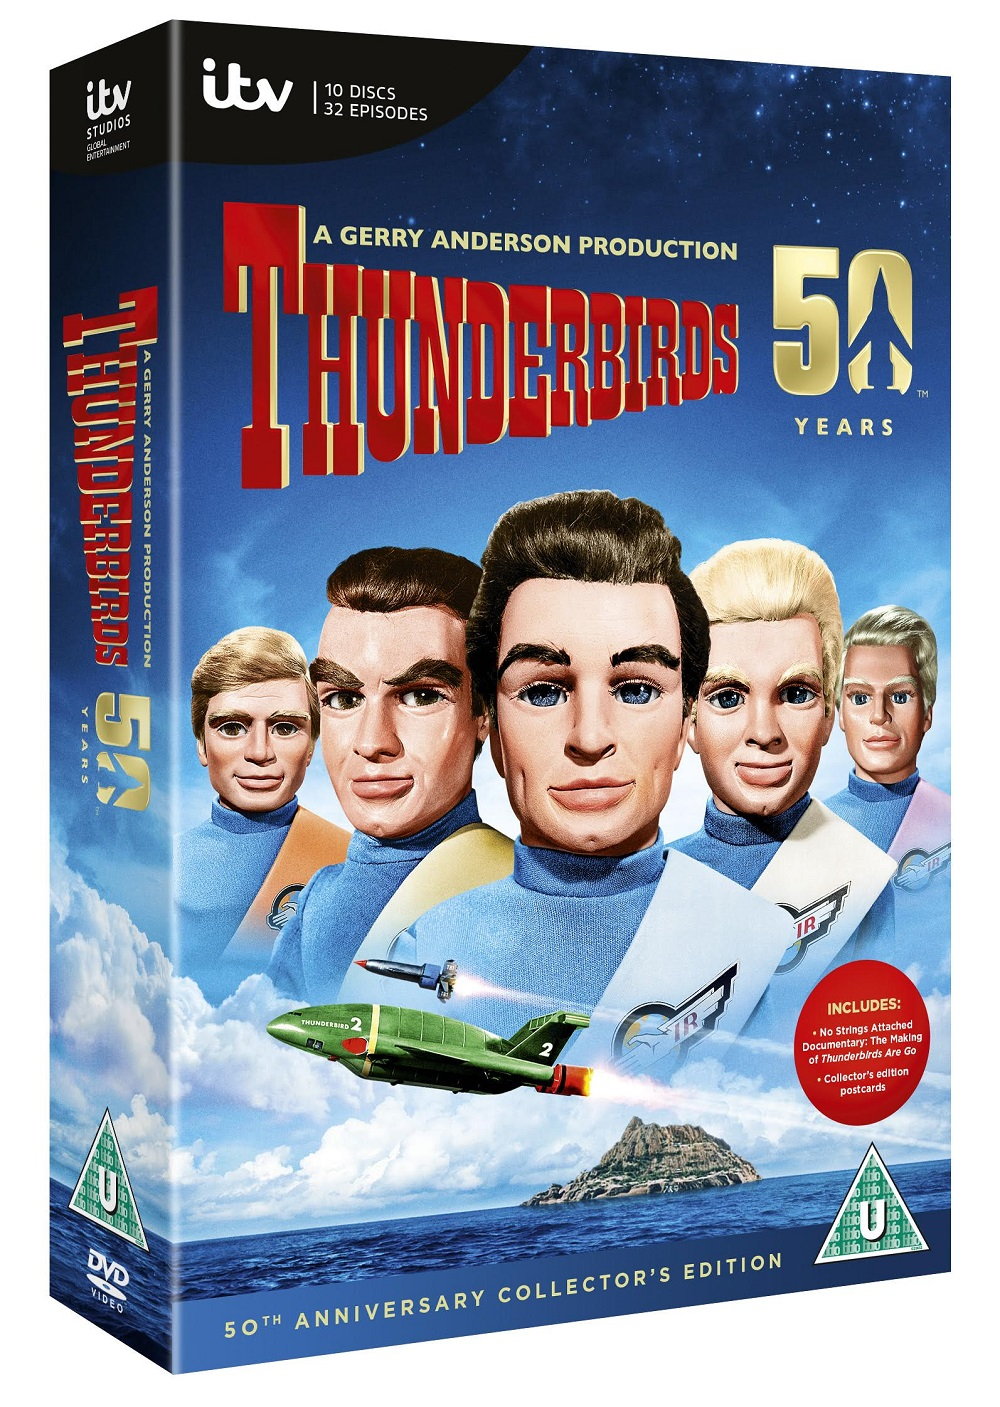 Thunderbirds the complete collection